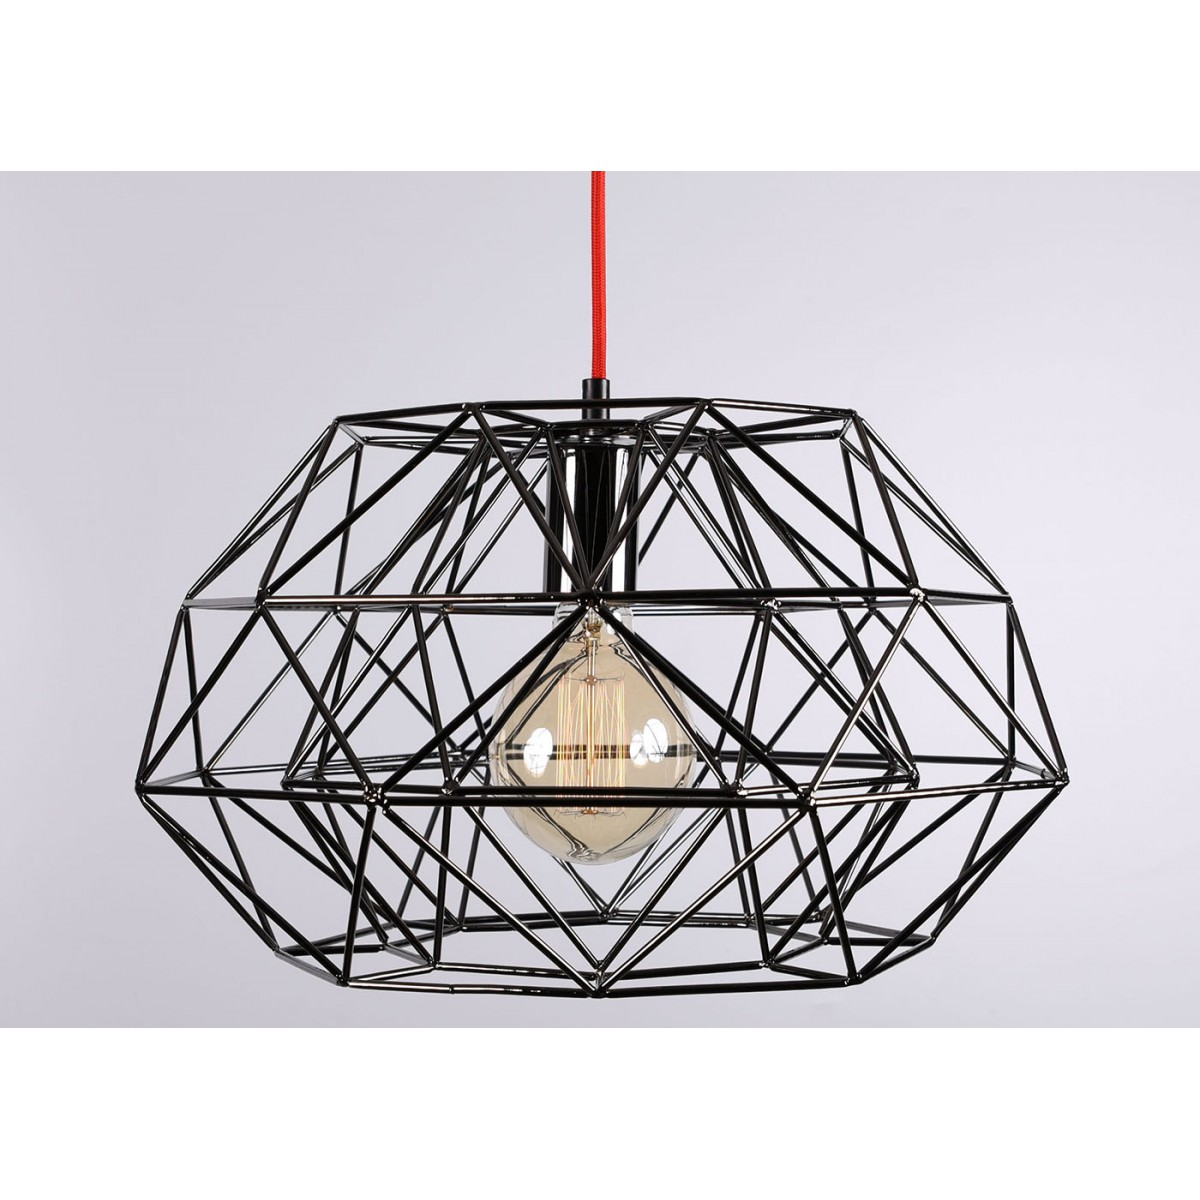 Suspension graphique en m tal dor bronze ou noire par for Suspension contemporaine